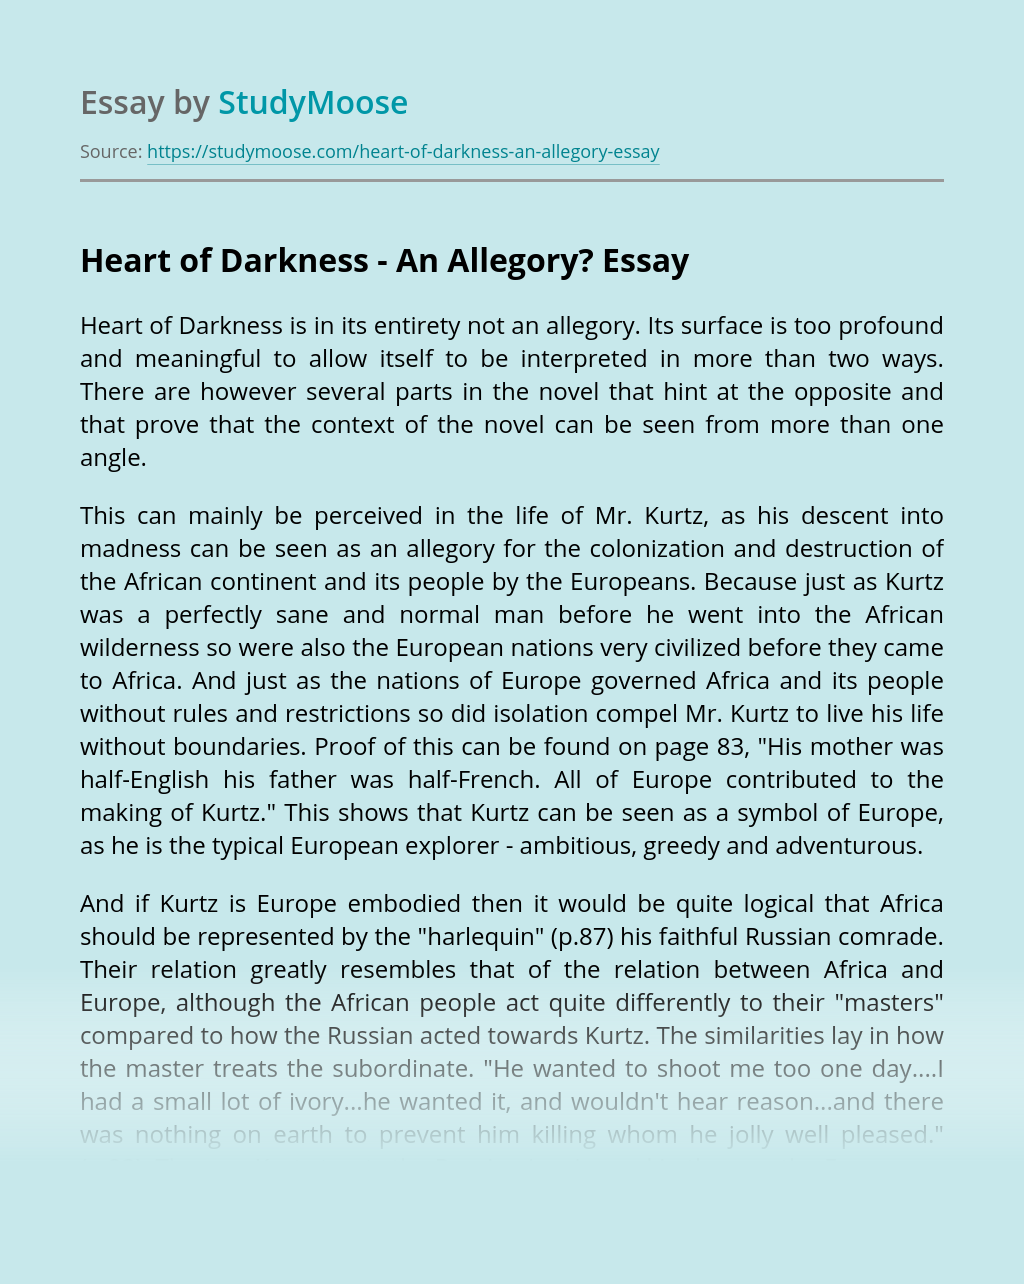 Heart of Darkness - An Allegory?